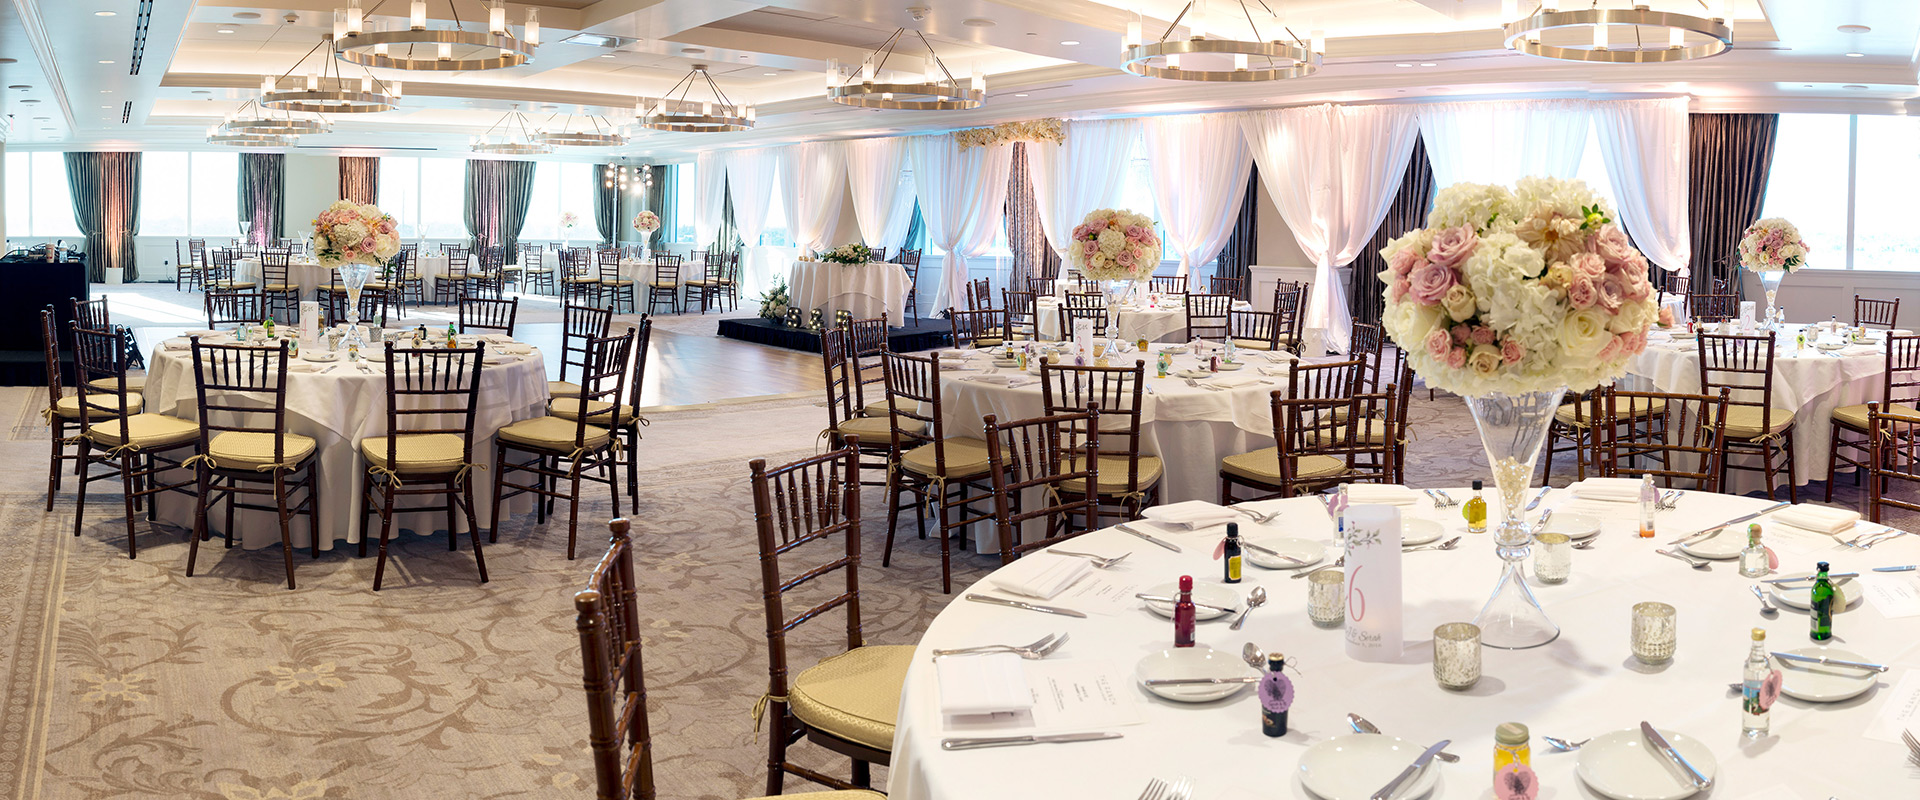 Large elegant room with tables and chairs and places settings for a wedding reception